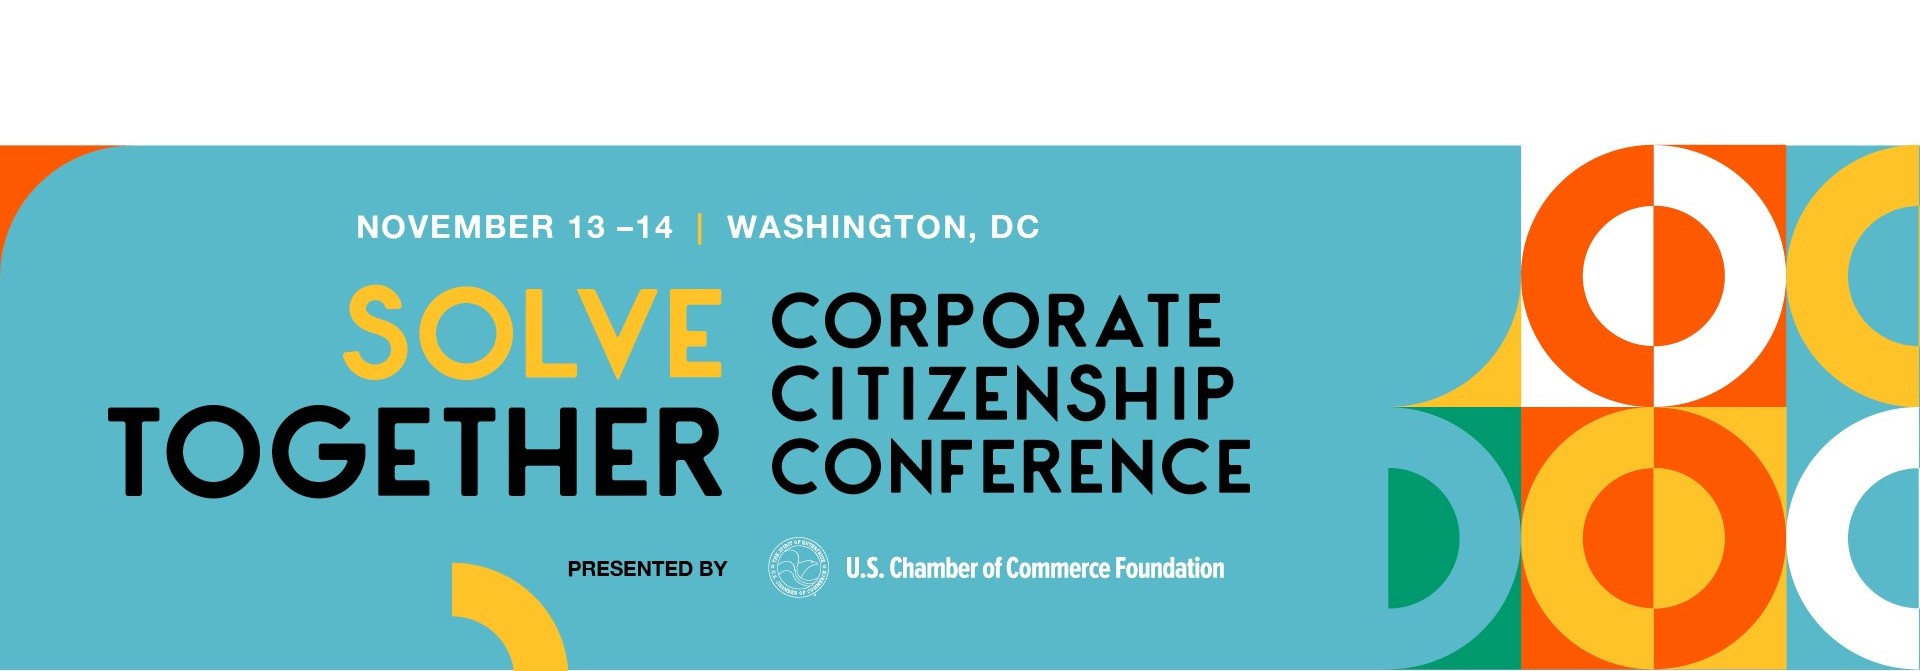 2019 Corporate Citizenship Conference